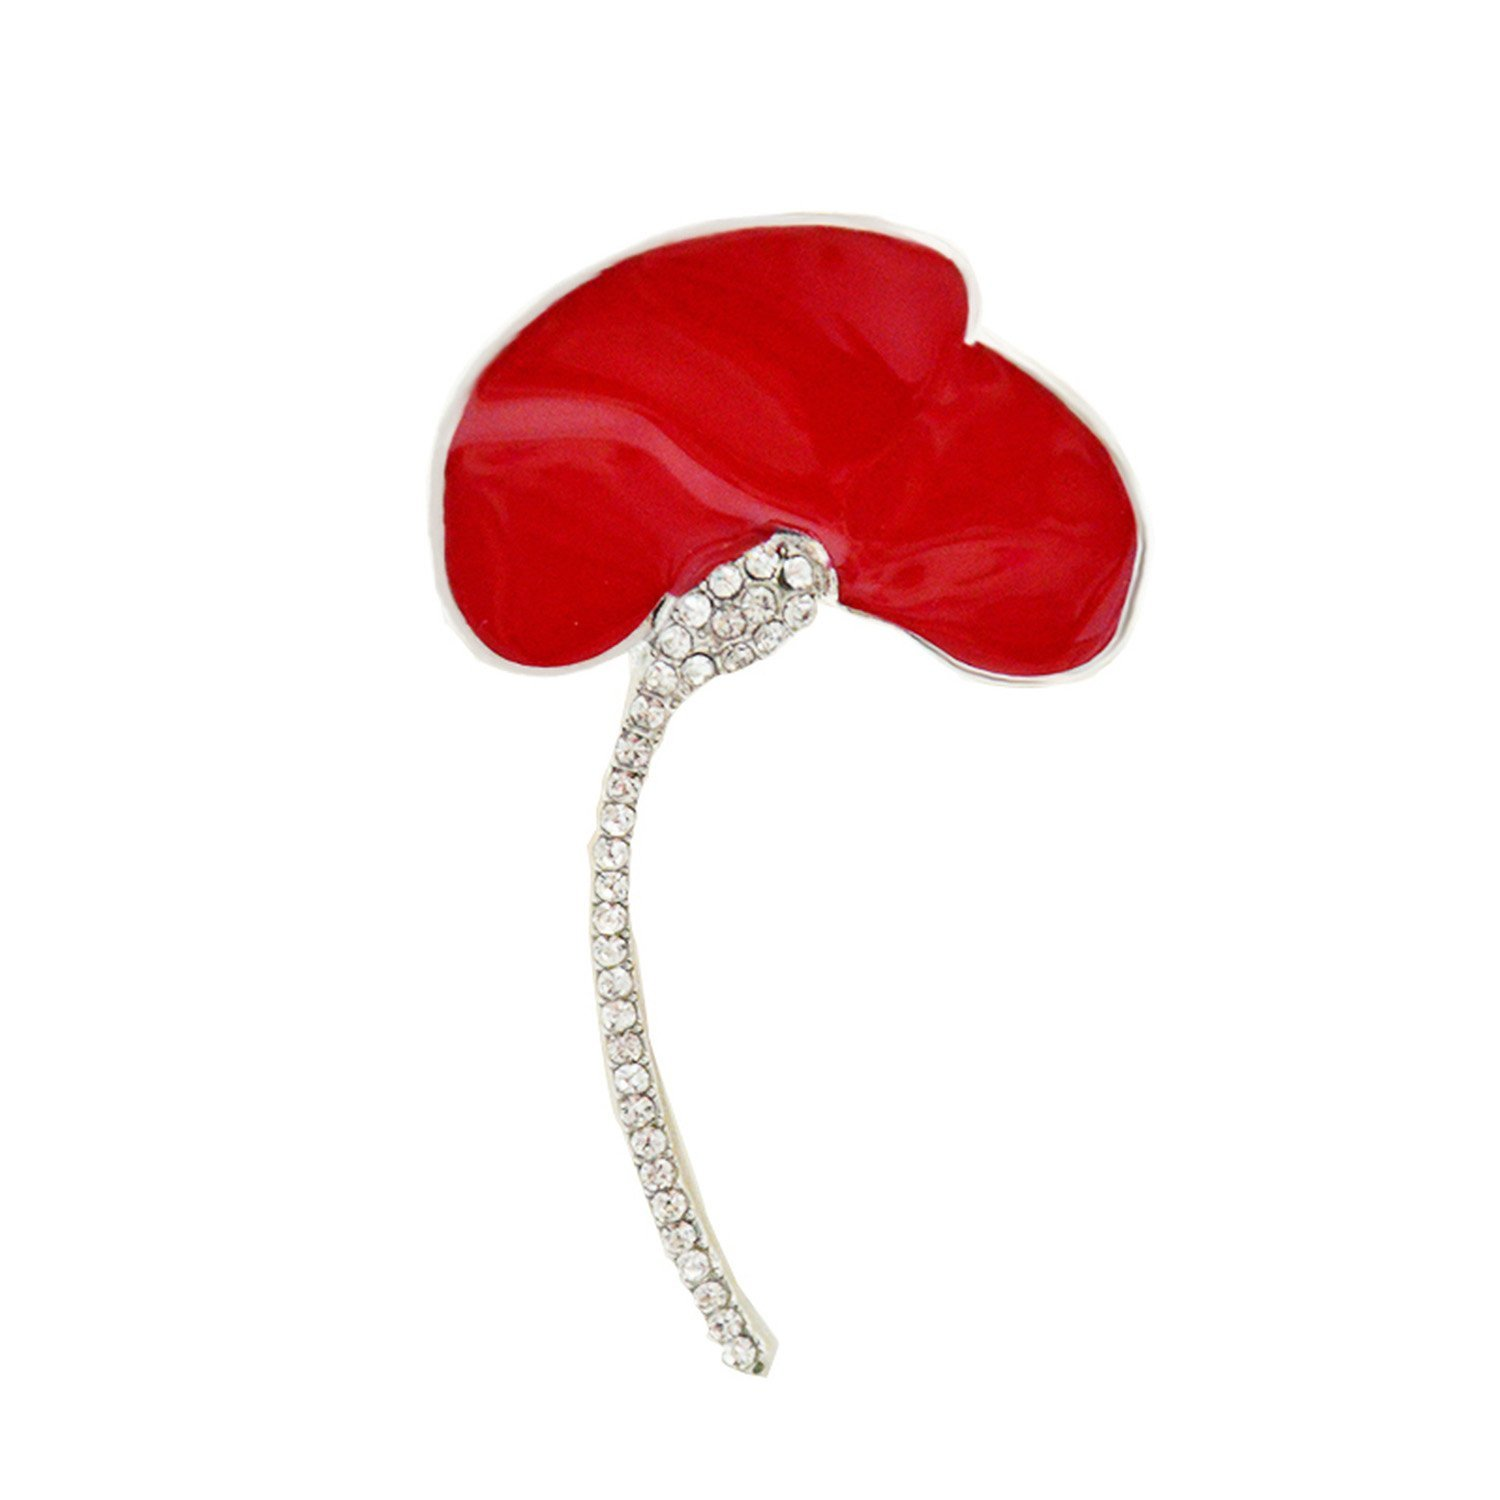 Vintage Red Poppies Brooch Rhinestone Brooches Pin Flower Alloy Brooch Party Gifts